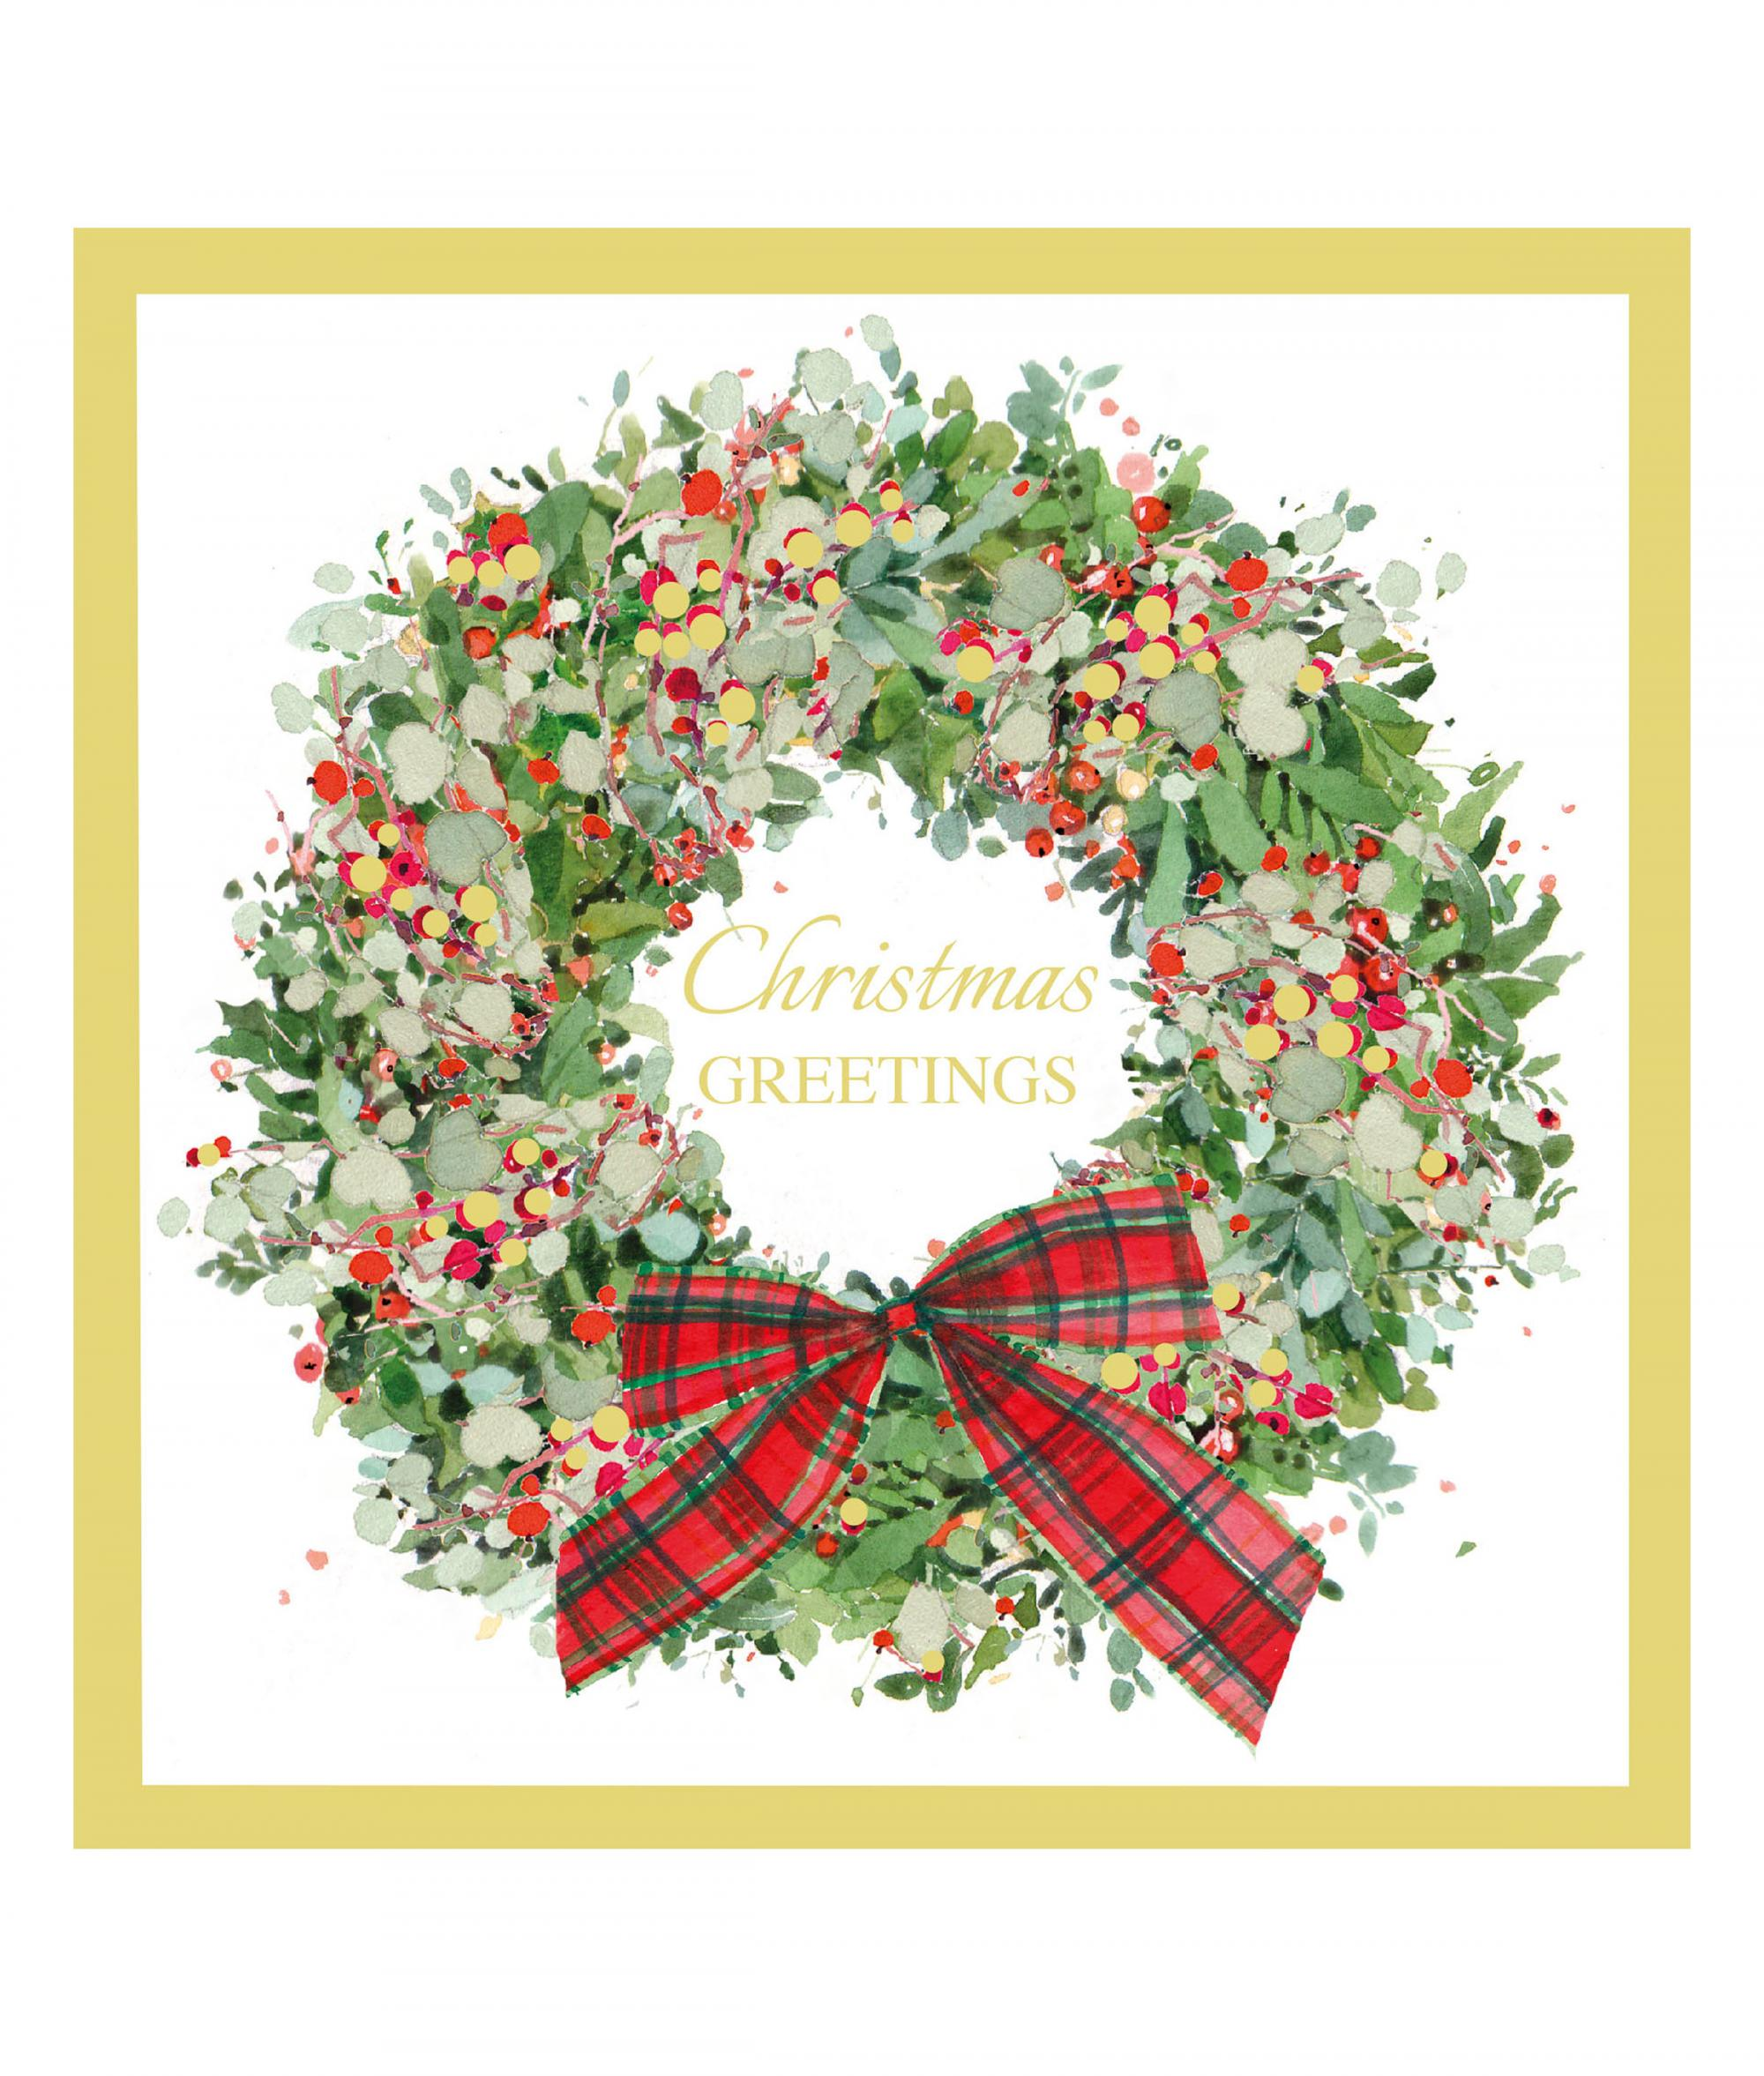 Wreath at Christmas Card - Pack of 10 | Cancer Research UK Online Shop